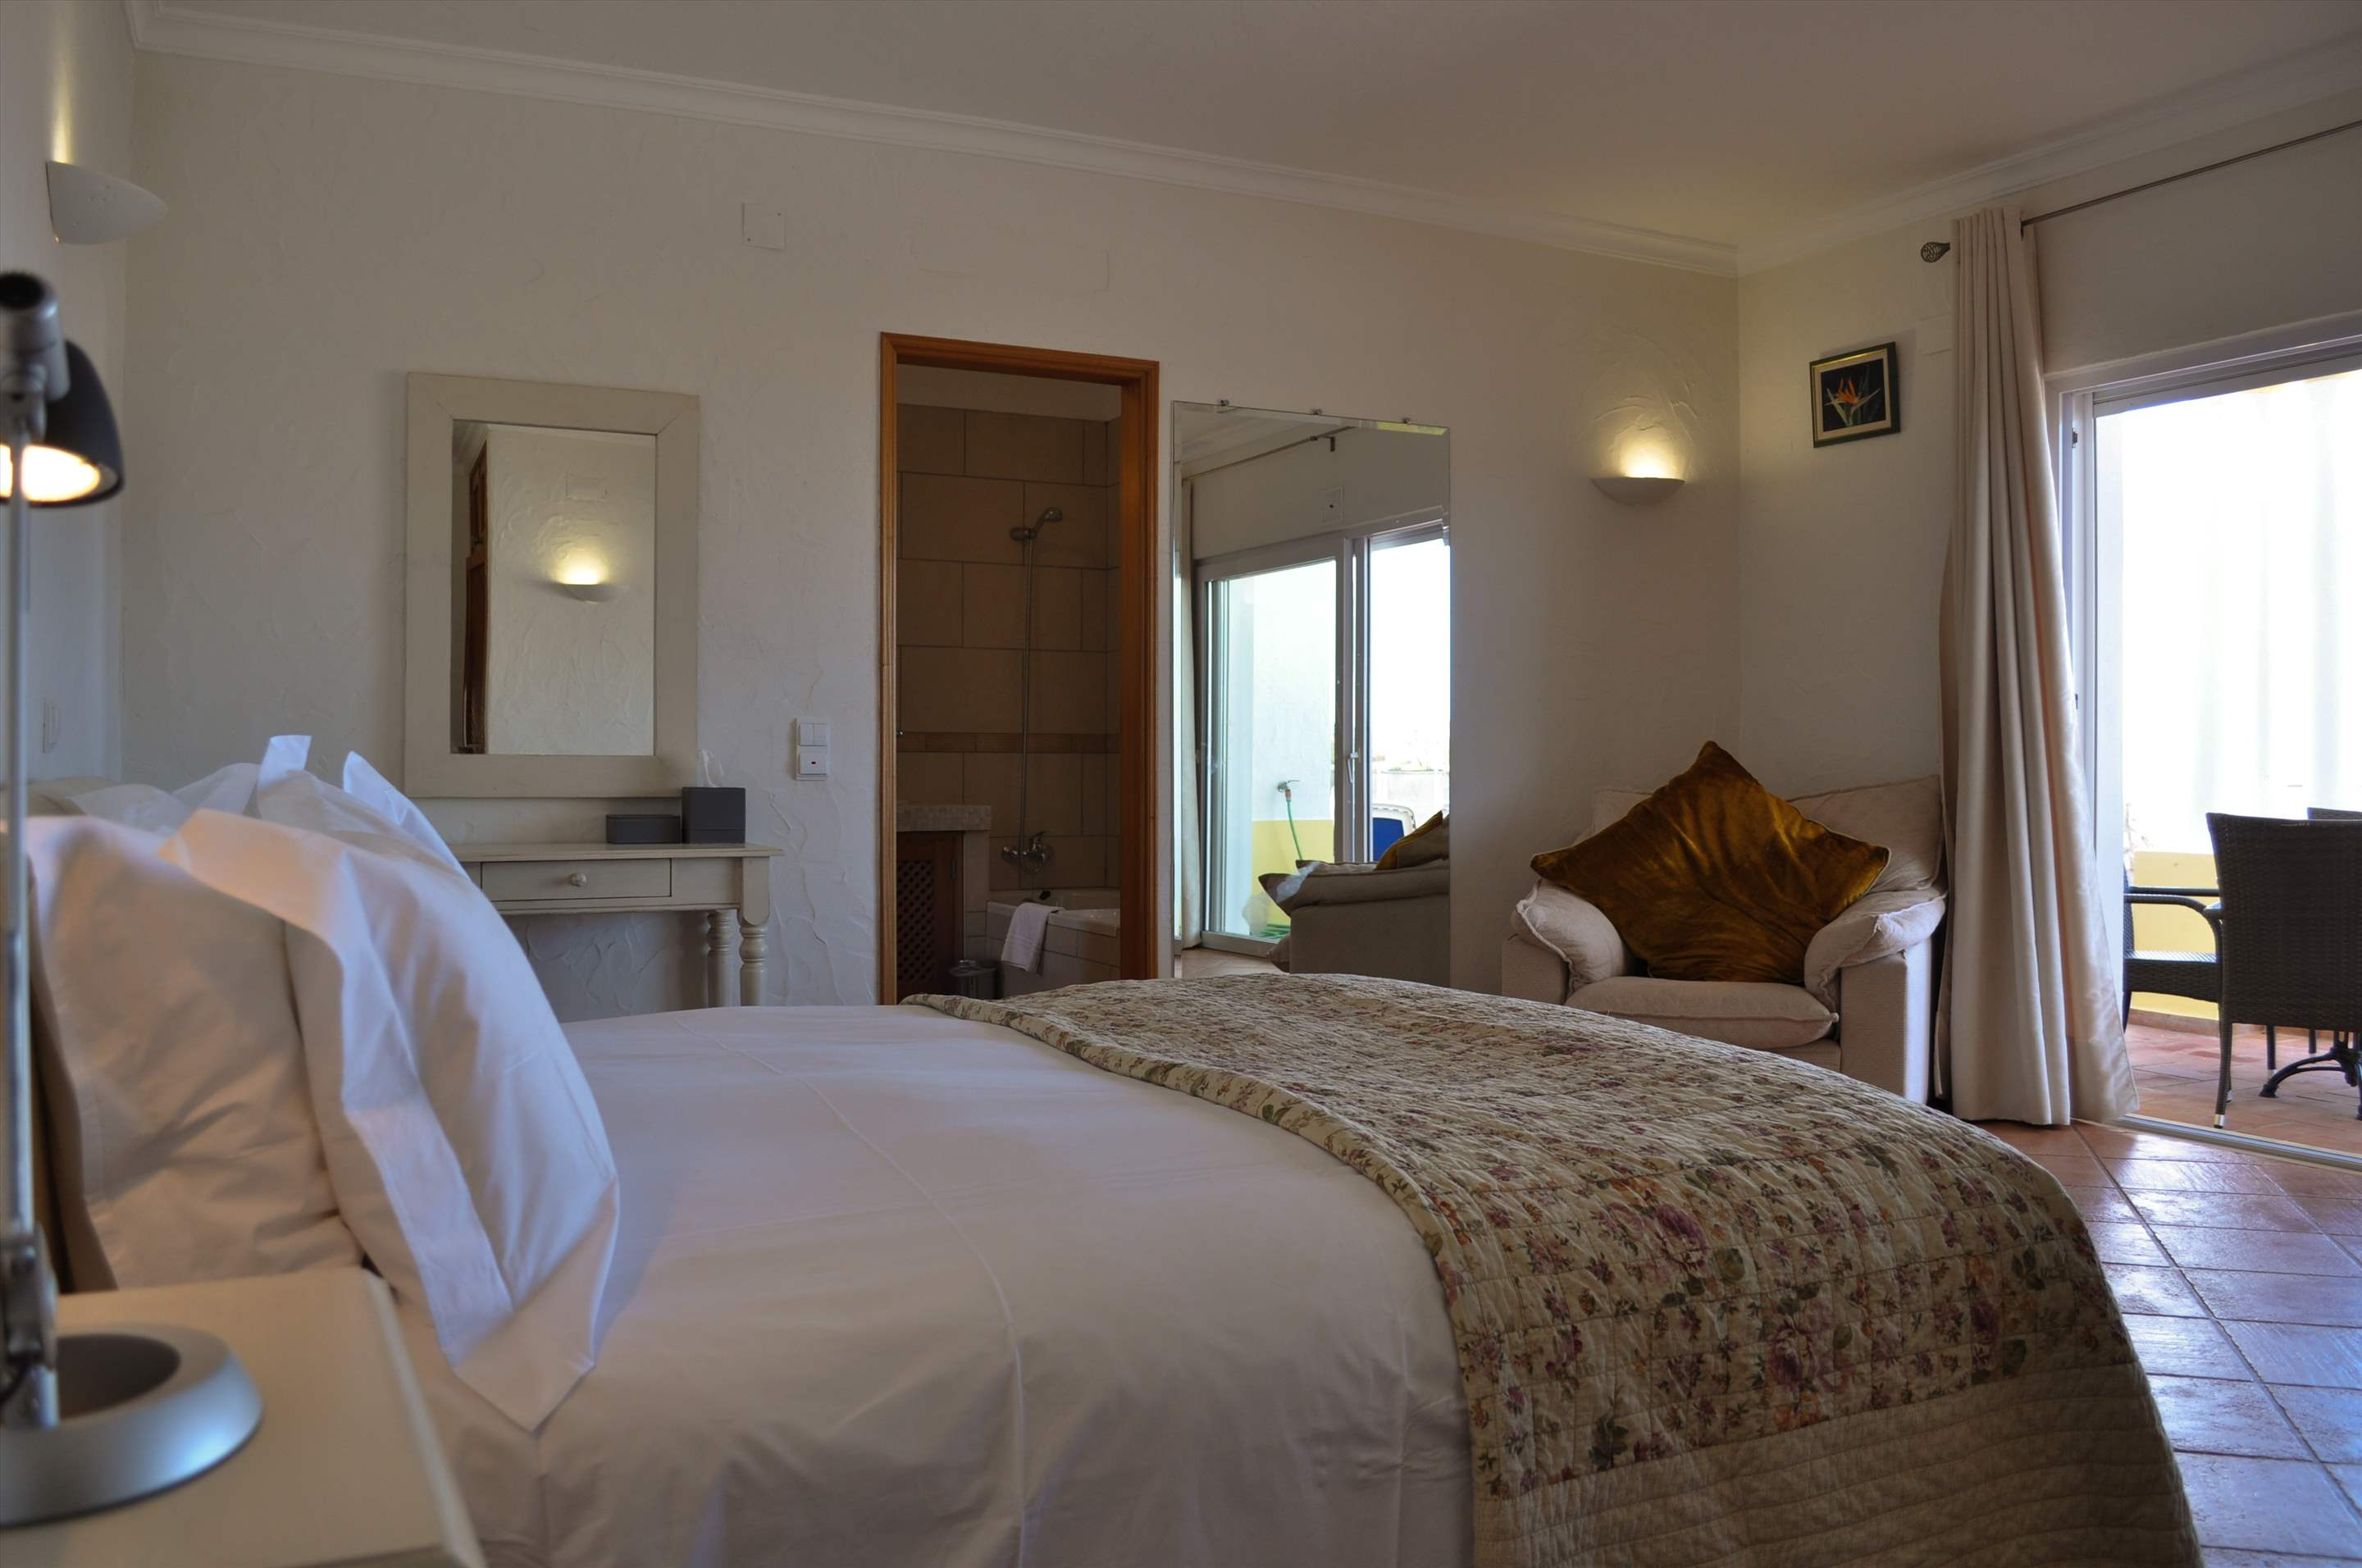 Martinhal Luxury Villa No.38, 3 bedroom villa in Martinhal Sagres, Algarve Photo #9